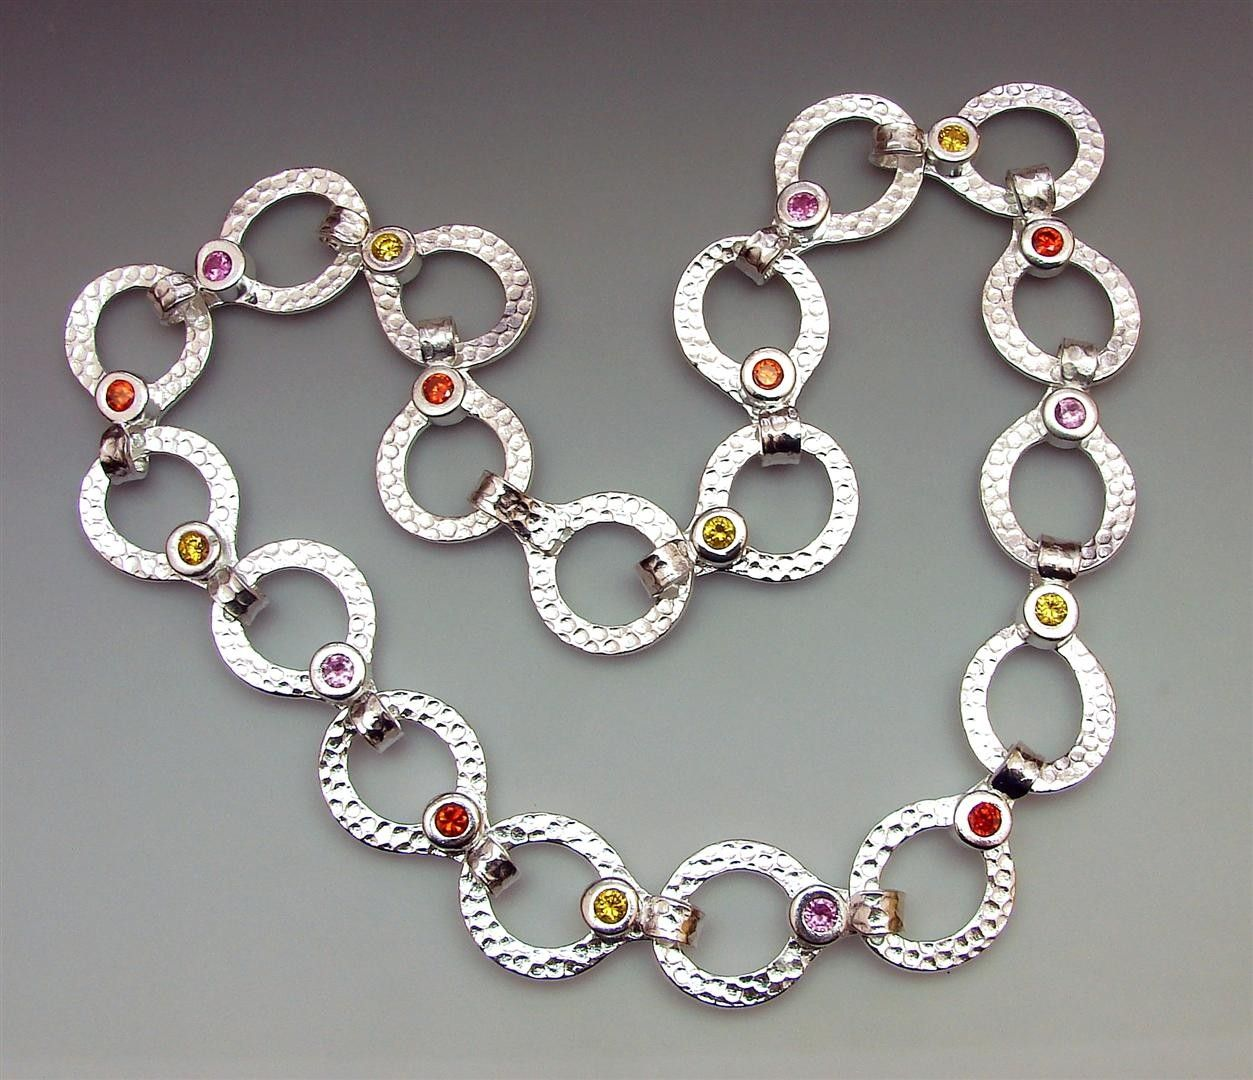 Retro Circles Chain with Joy Funnell #craftartedu | Metal Clay ...